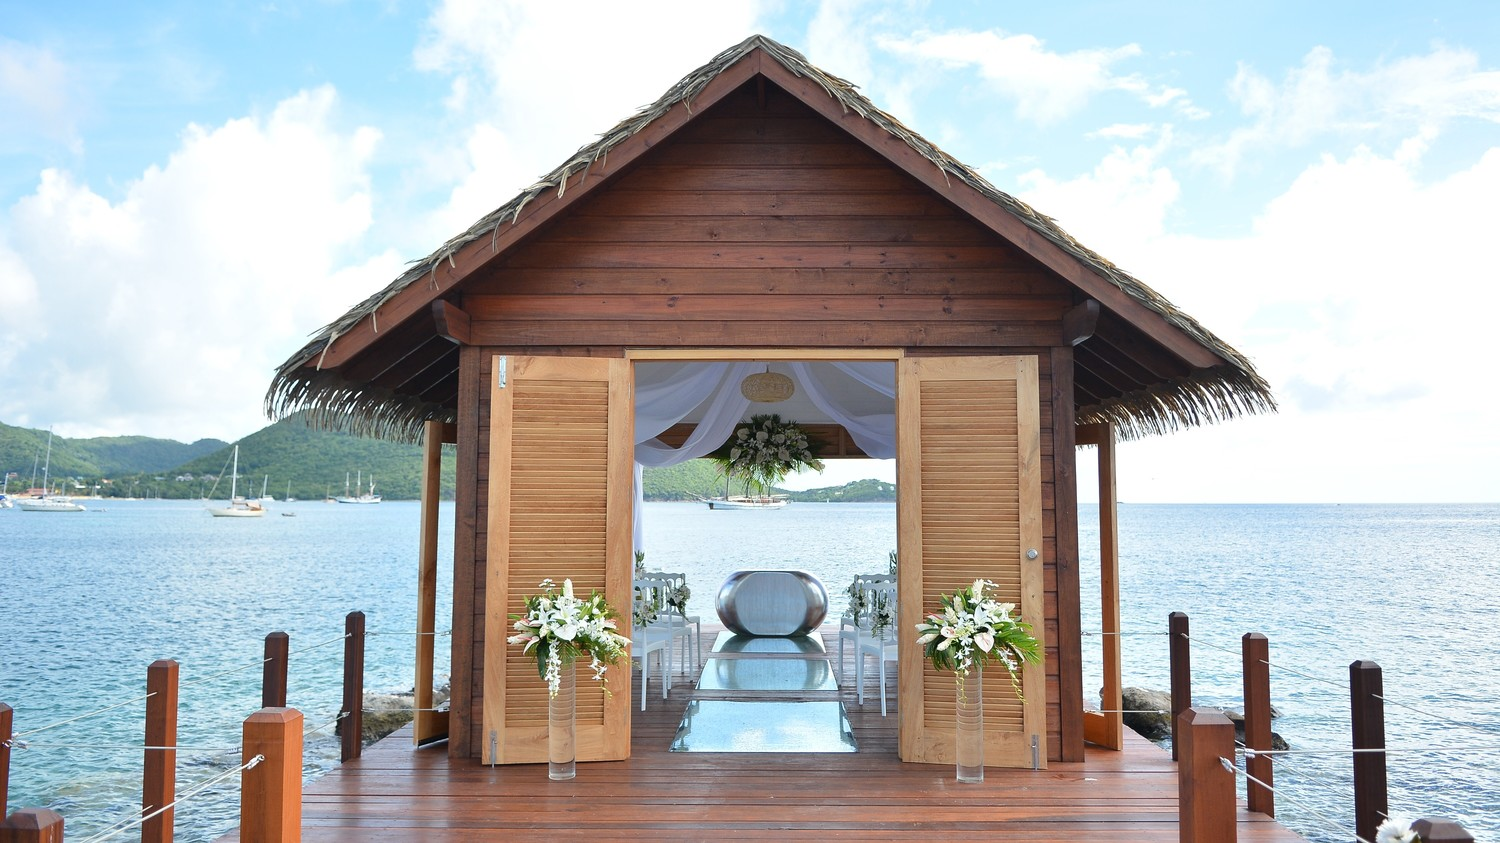 Explore The Beauty Of Caribbean: The First Overwater Wedding Chapel In The Caribbean Is The